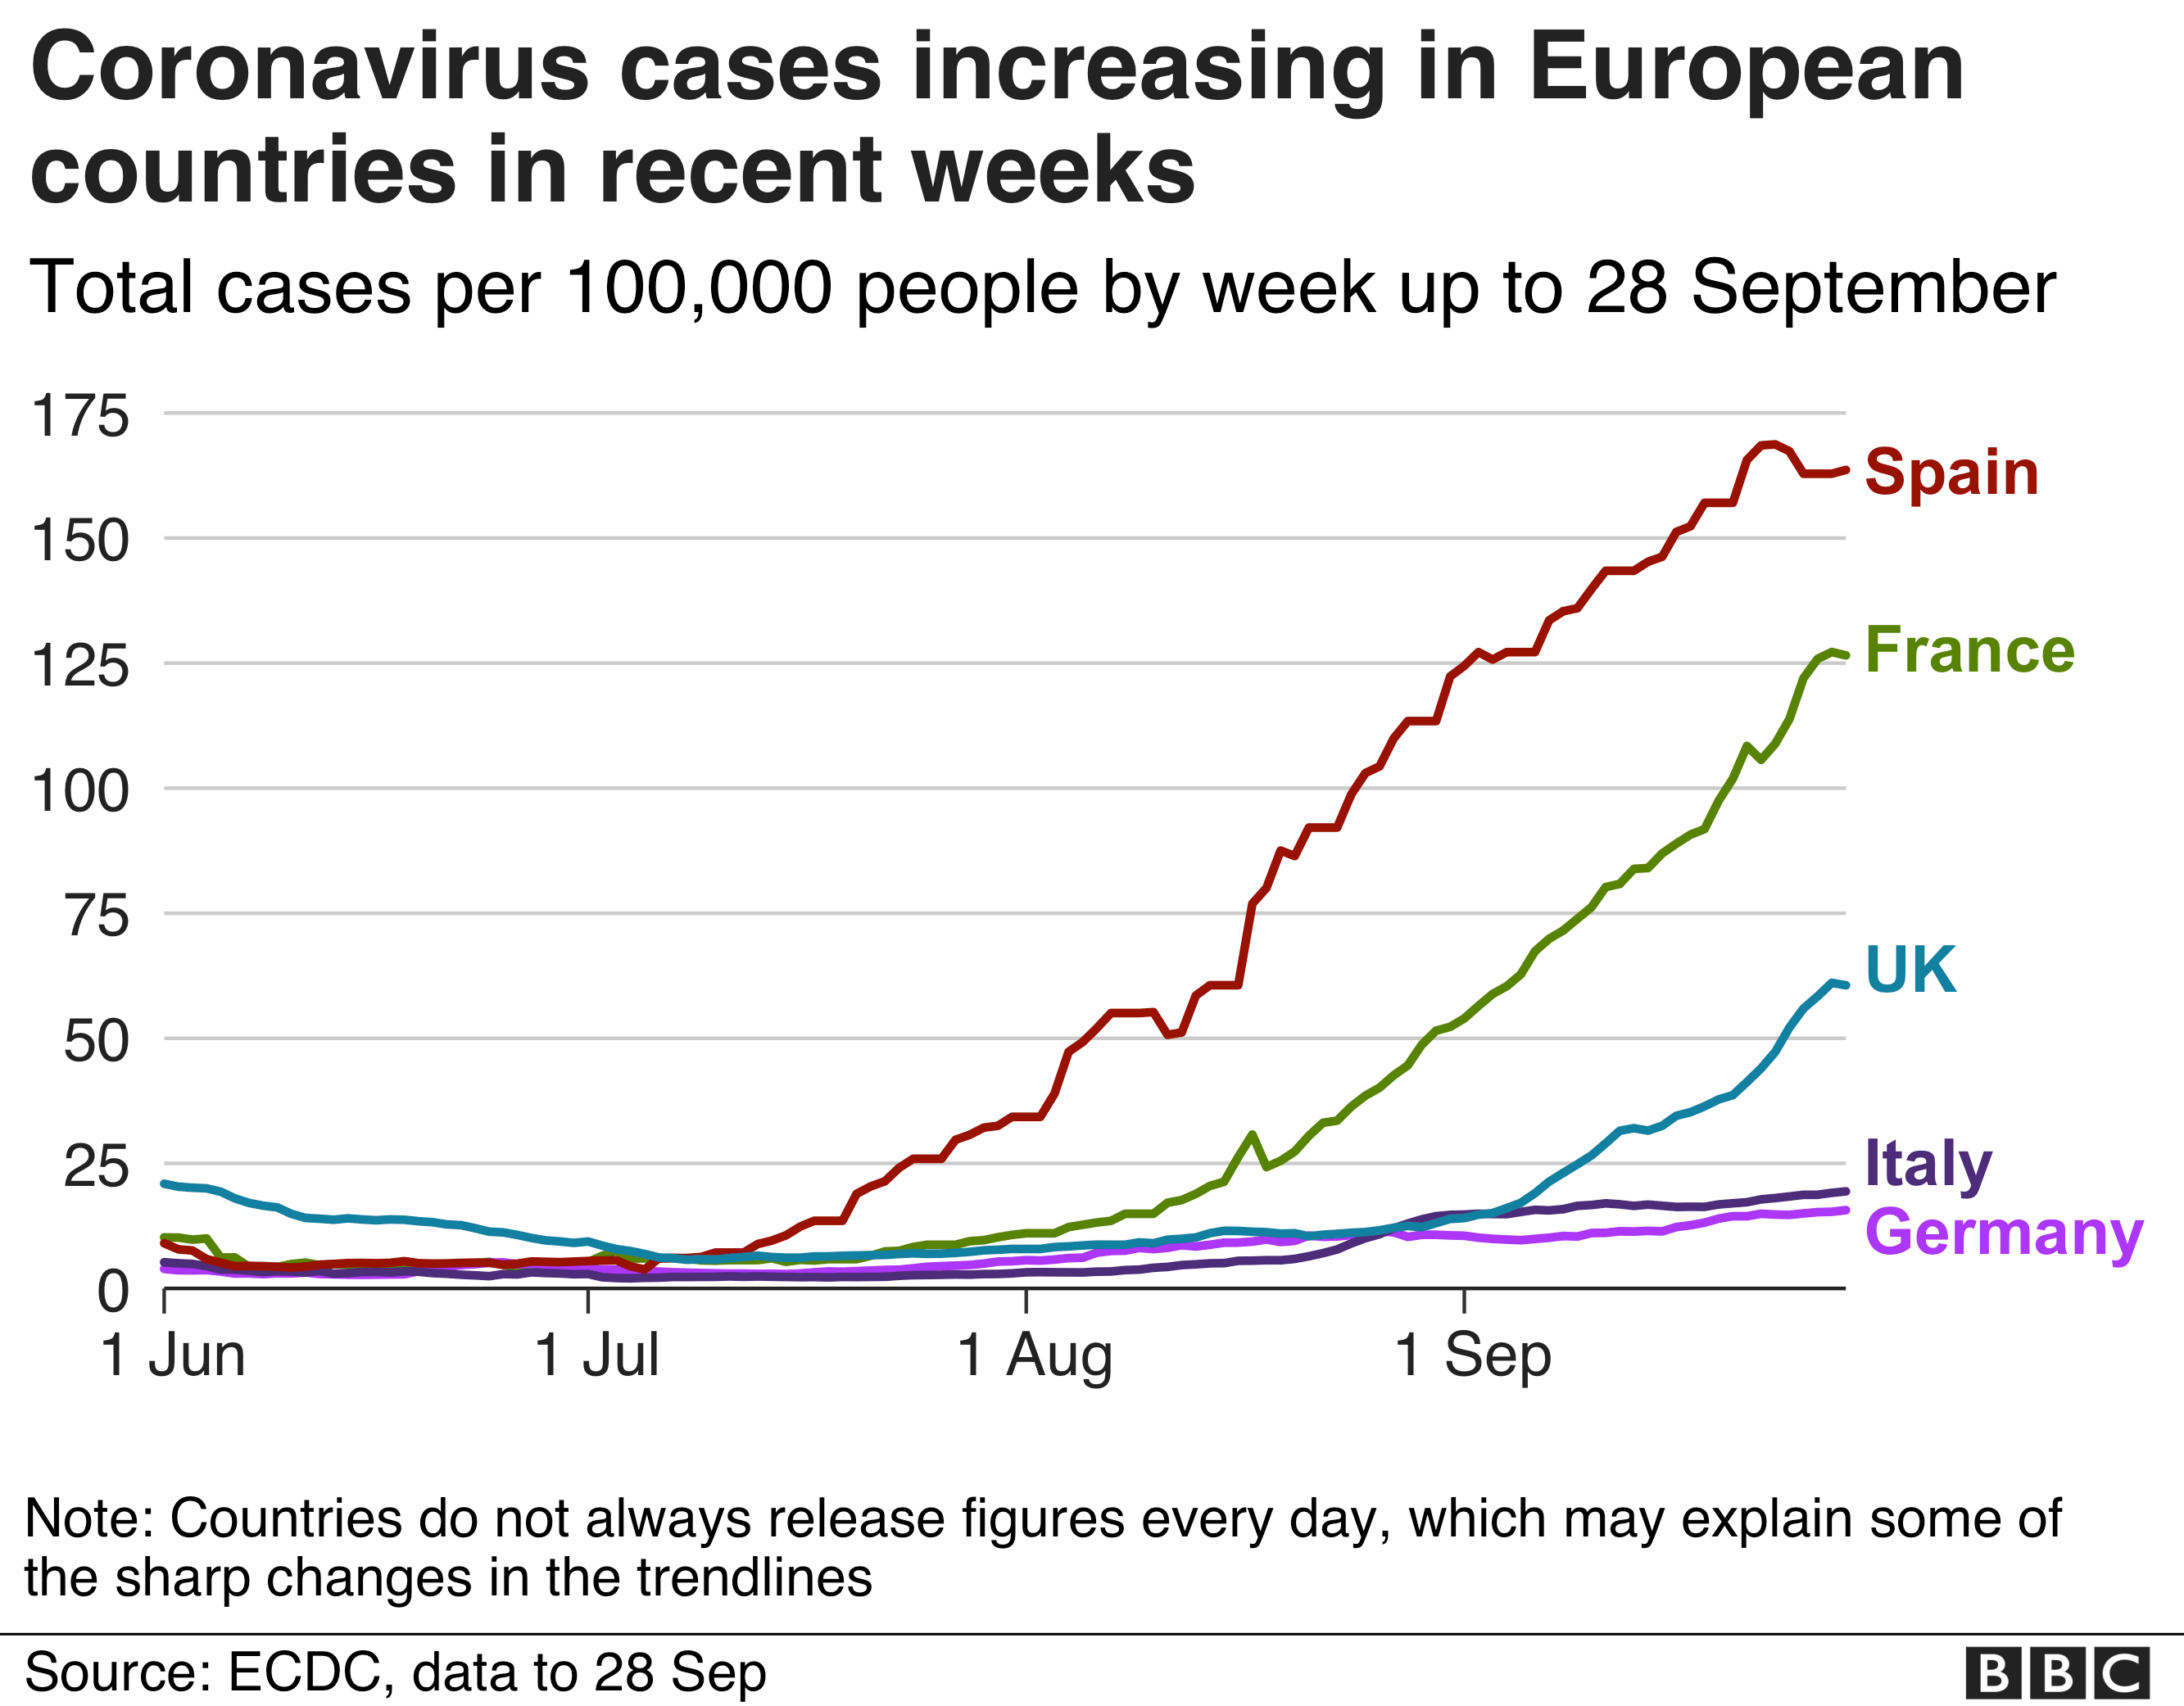 Line chart shows how cases increased fast in Spain, France, UK, and slower in Italy and Germany